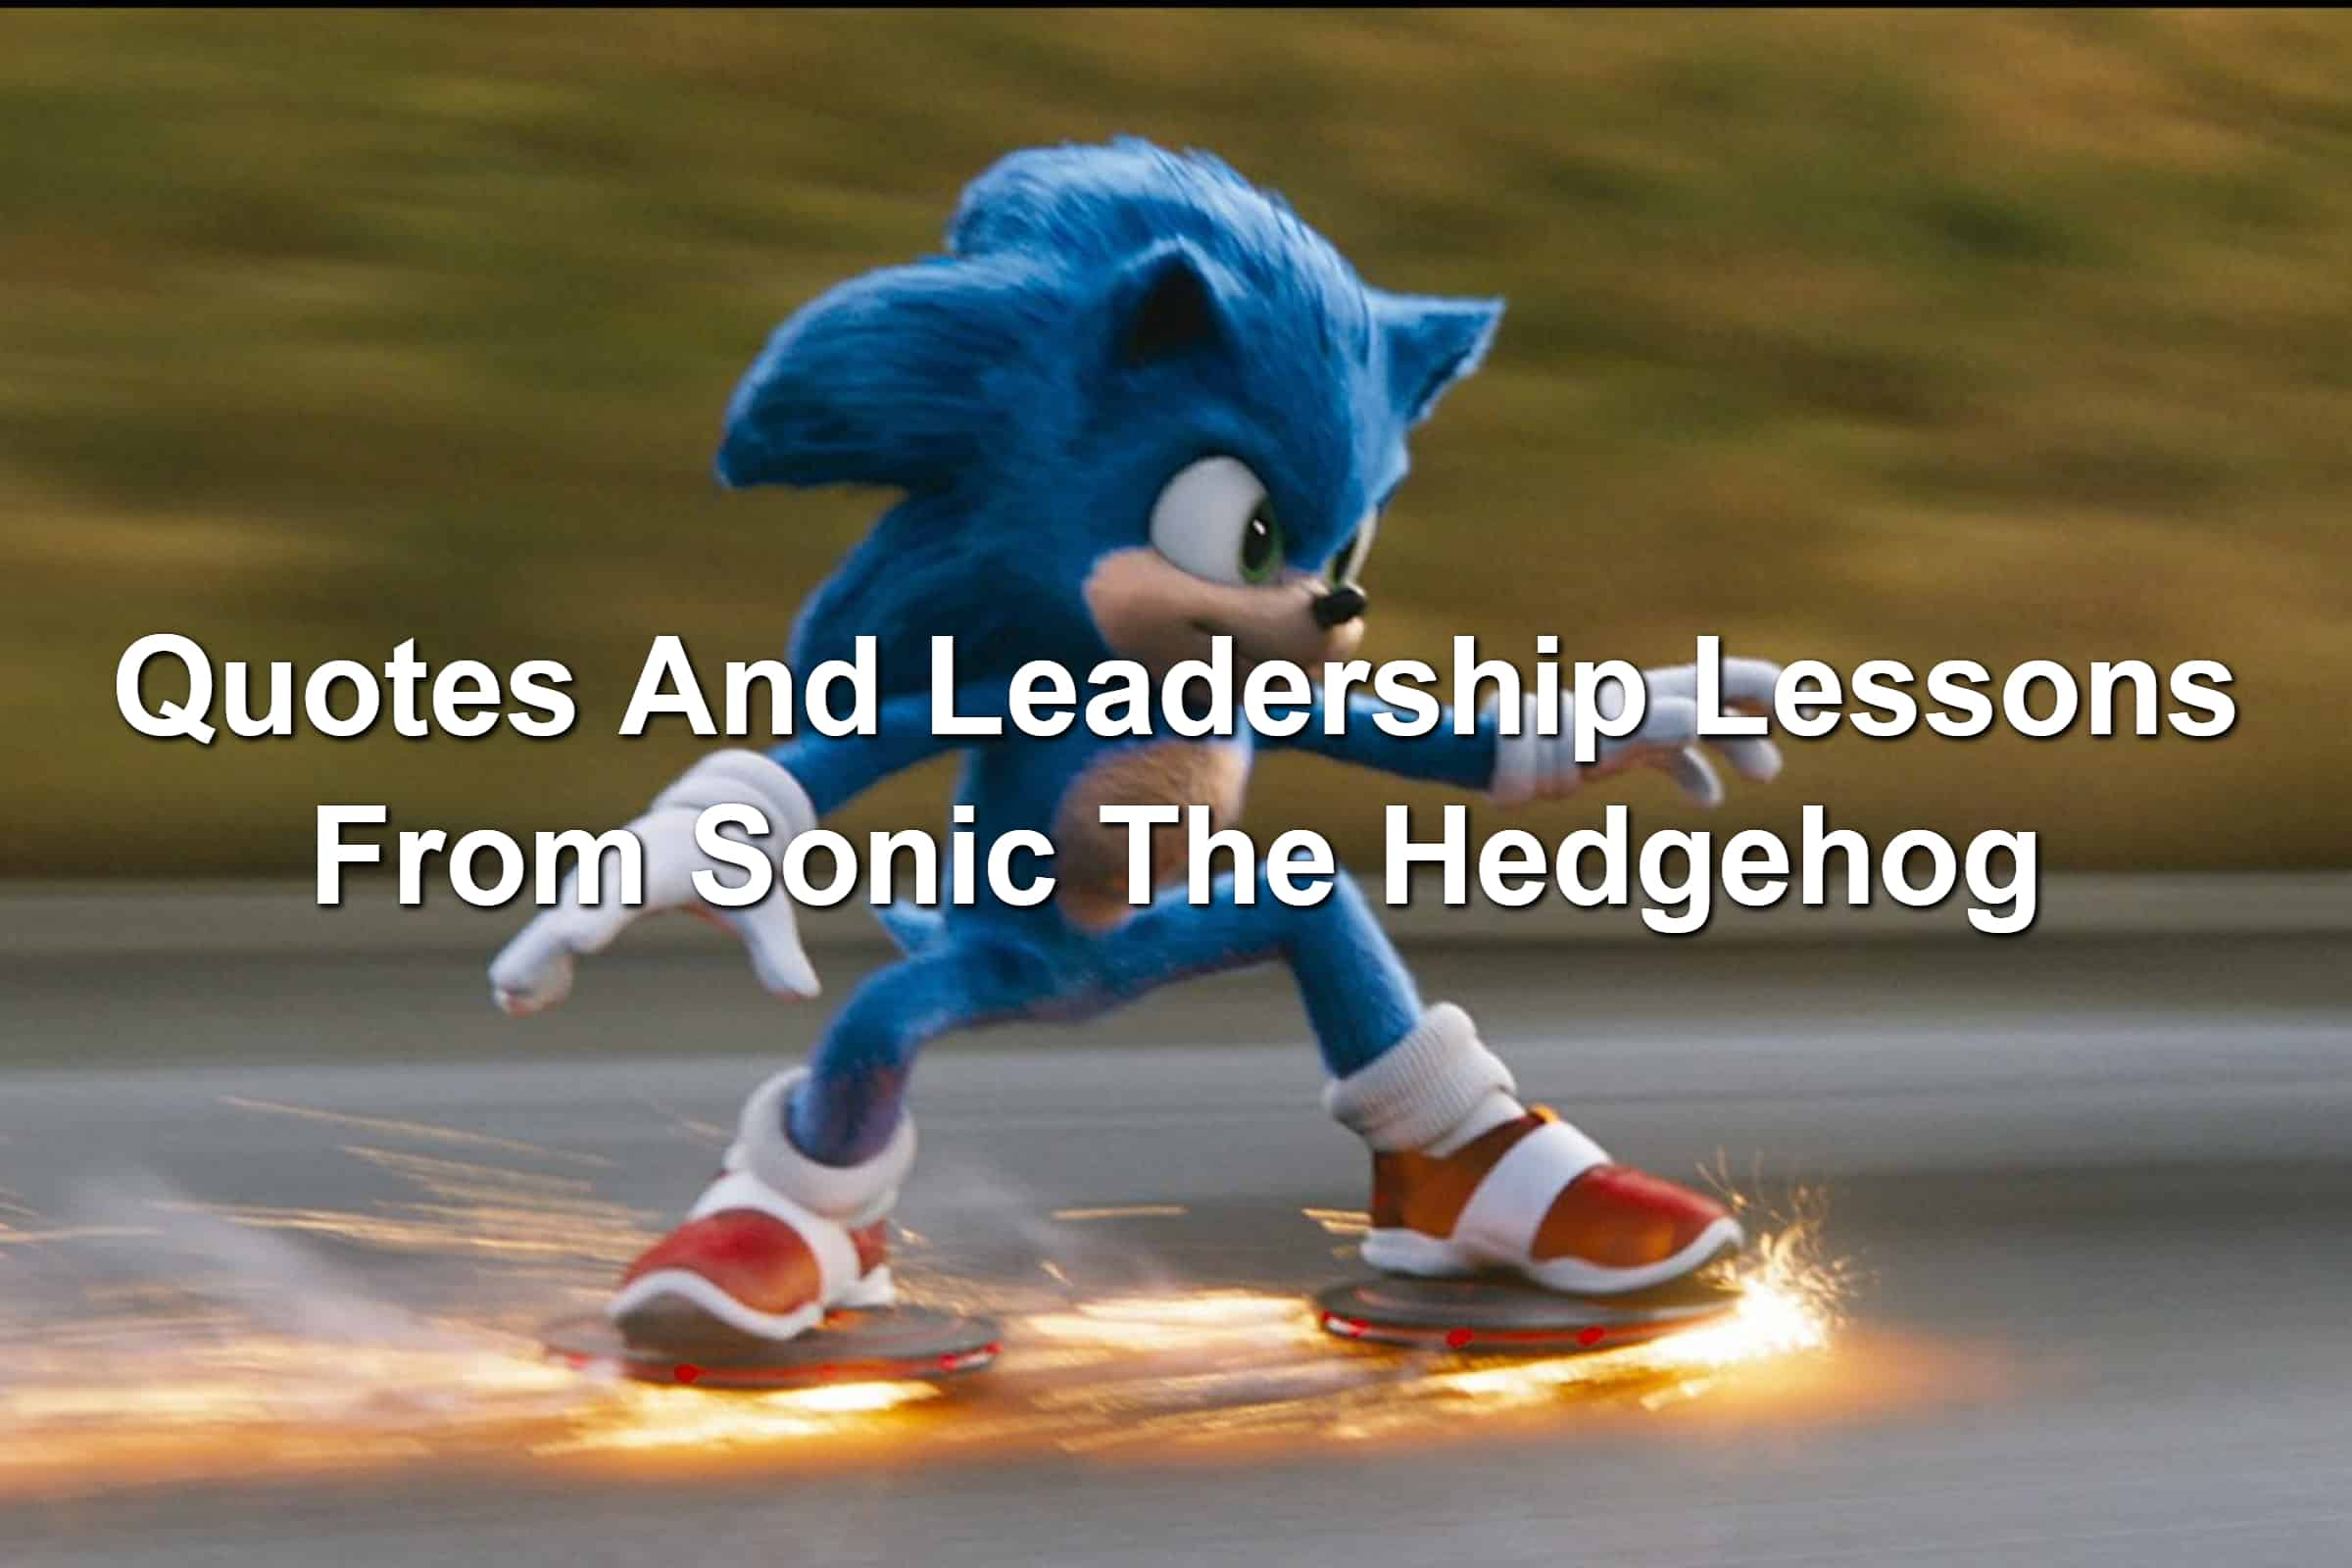 Sonic the Hedgehog live action movie clip with sonic skidding on the street